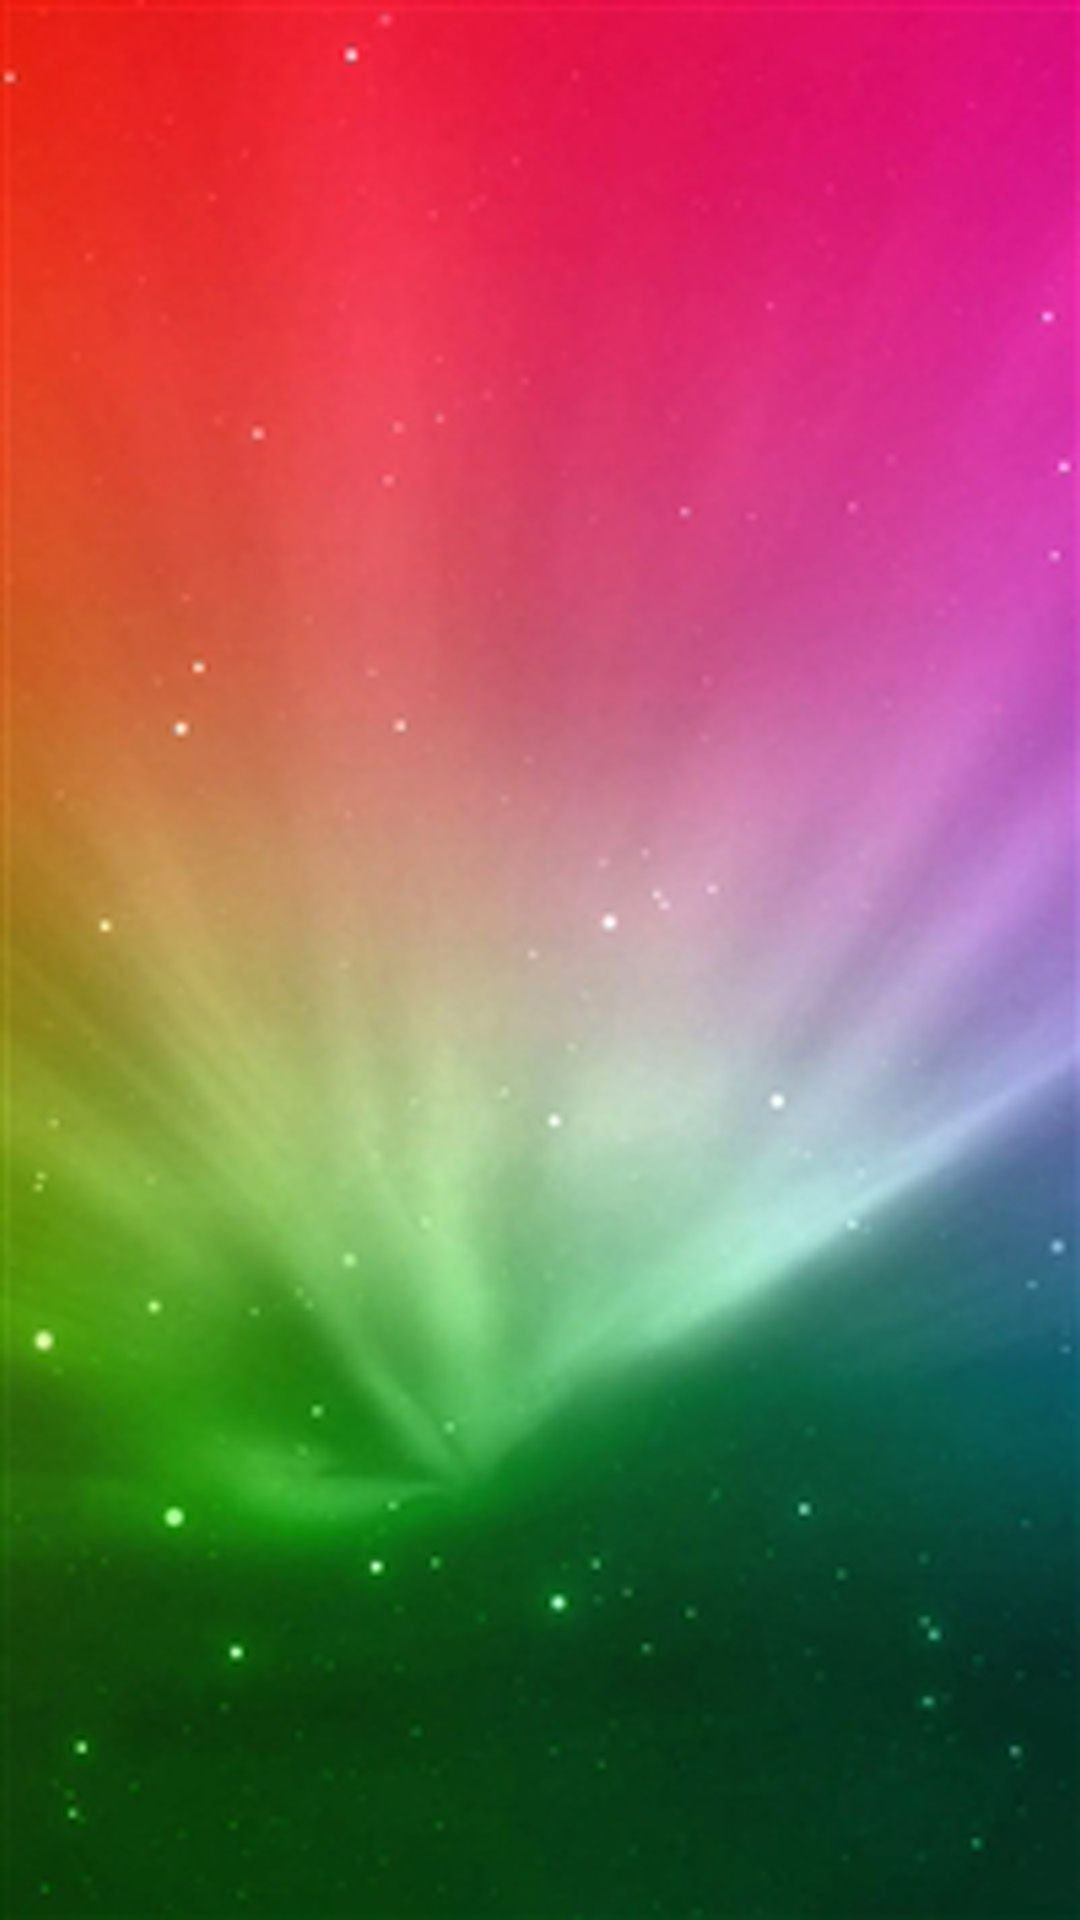 Wallpapers for your Moto G Android Mobile   Android News 1080x1920